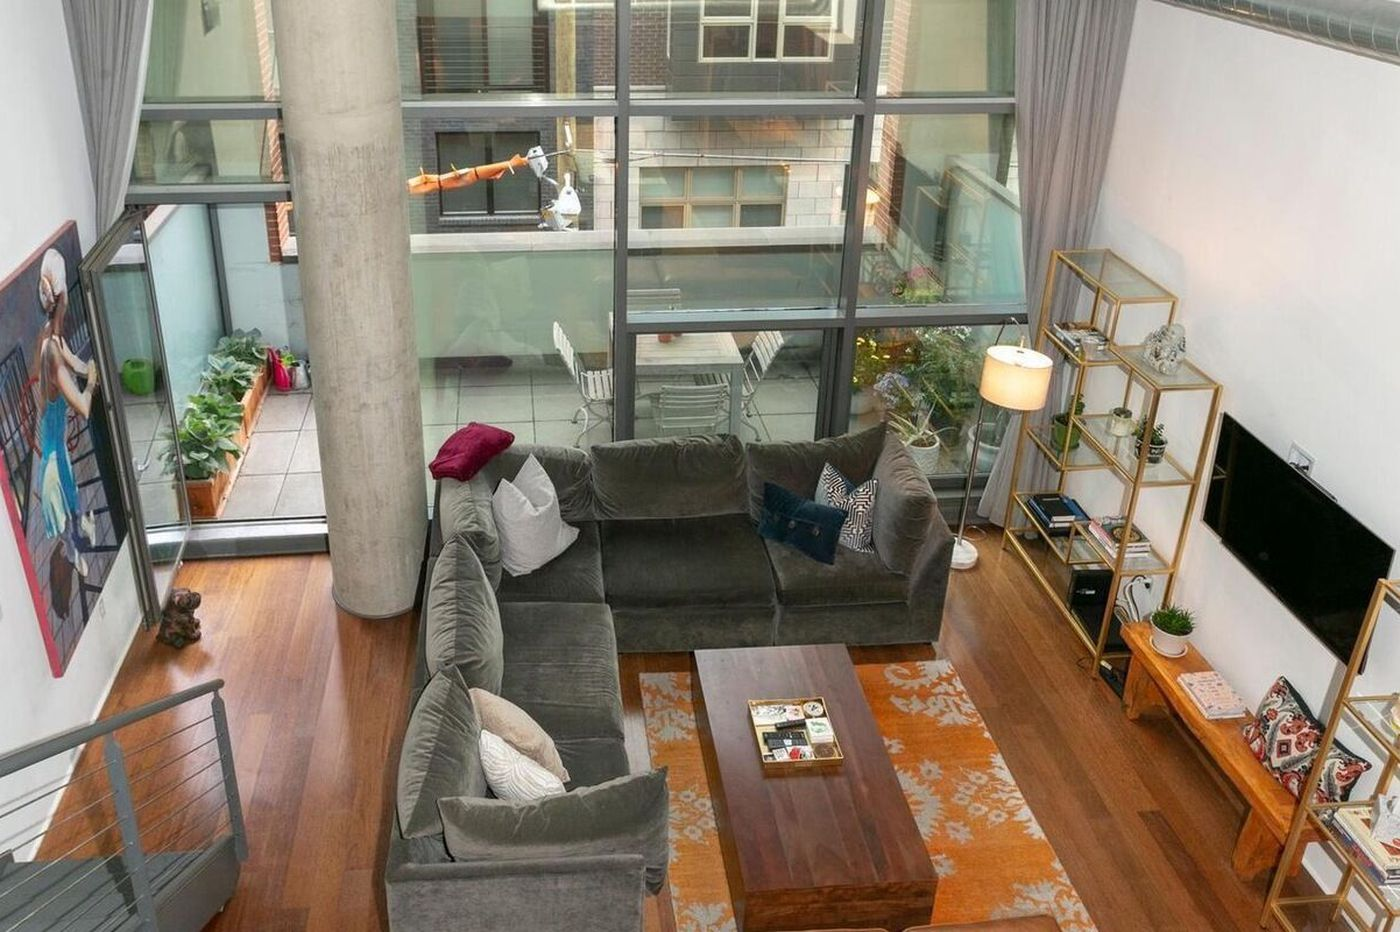 On the market: South Street condo for $550,000